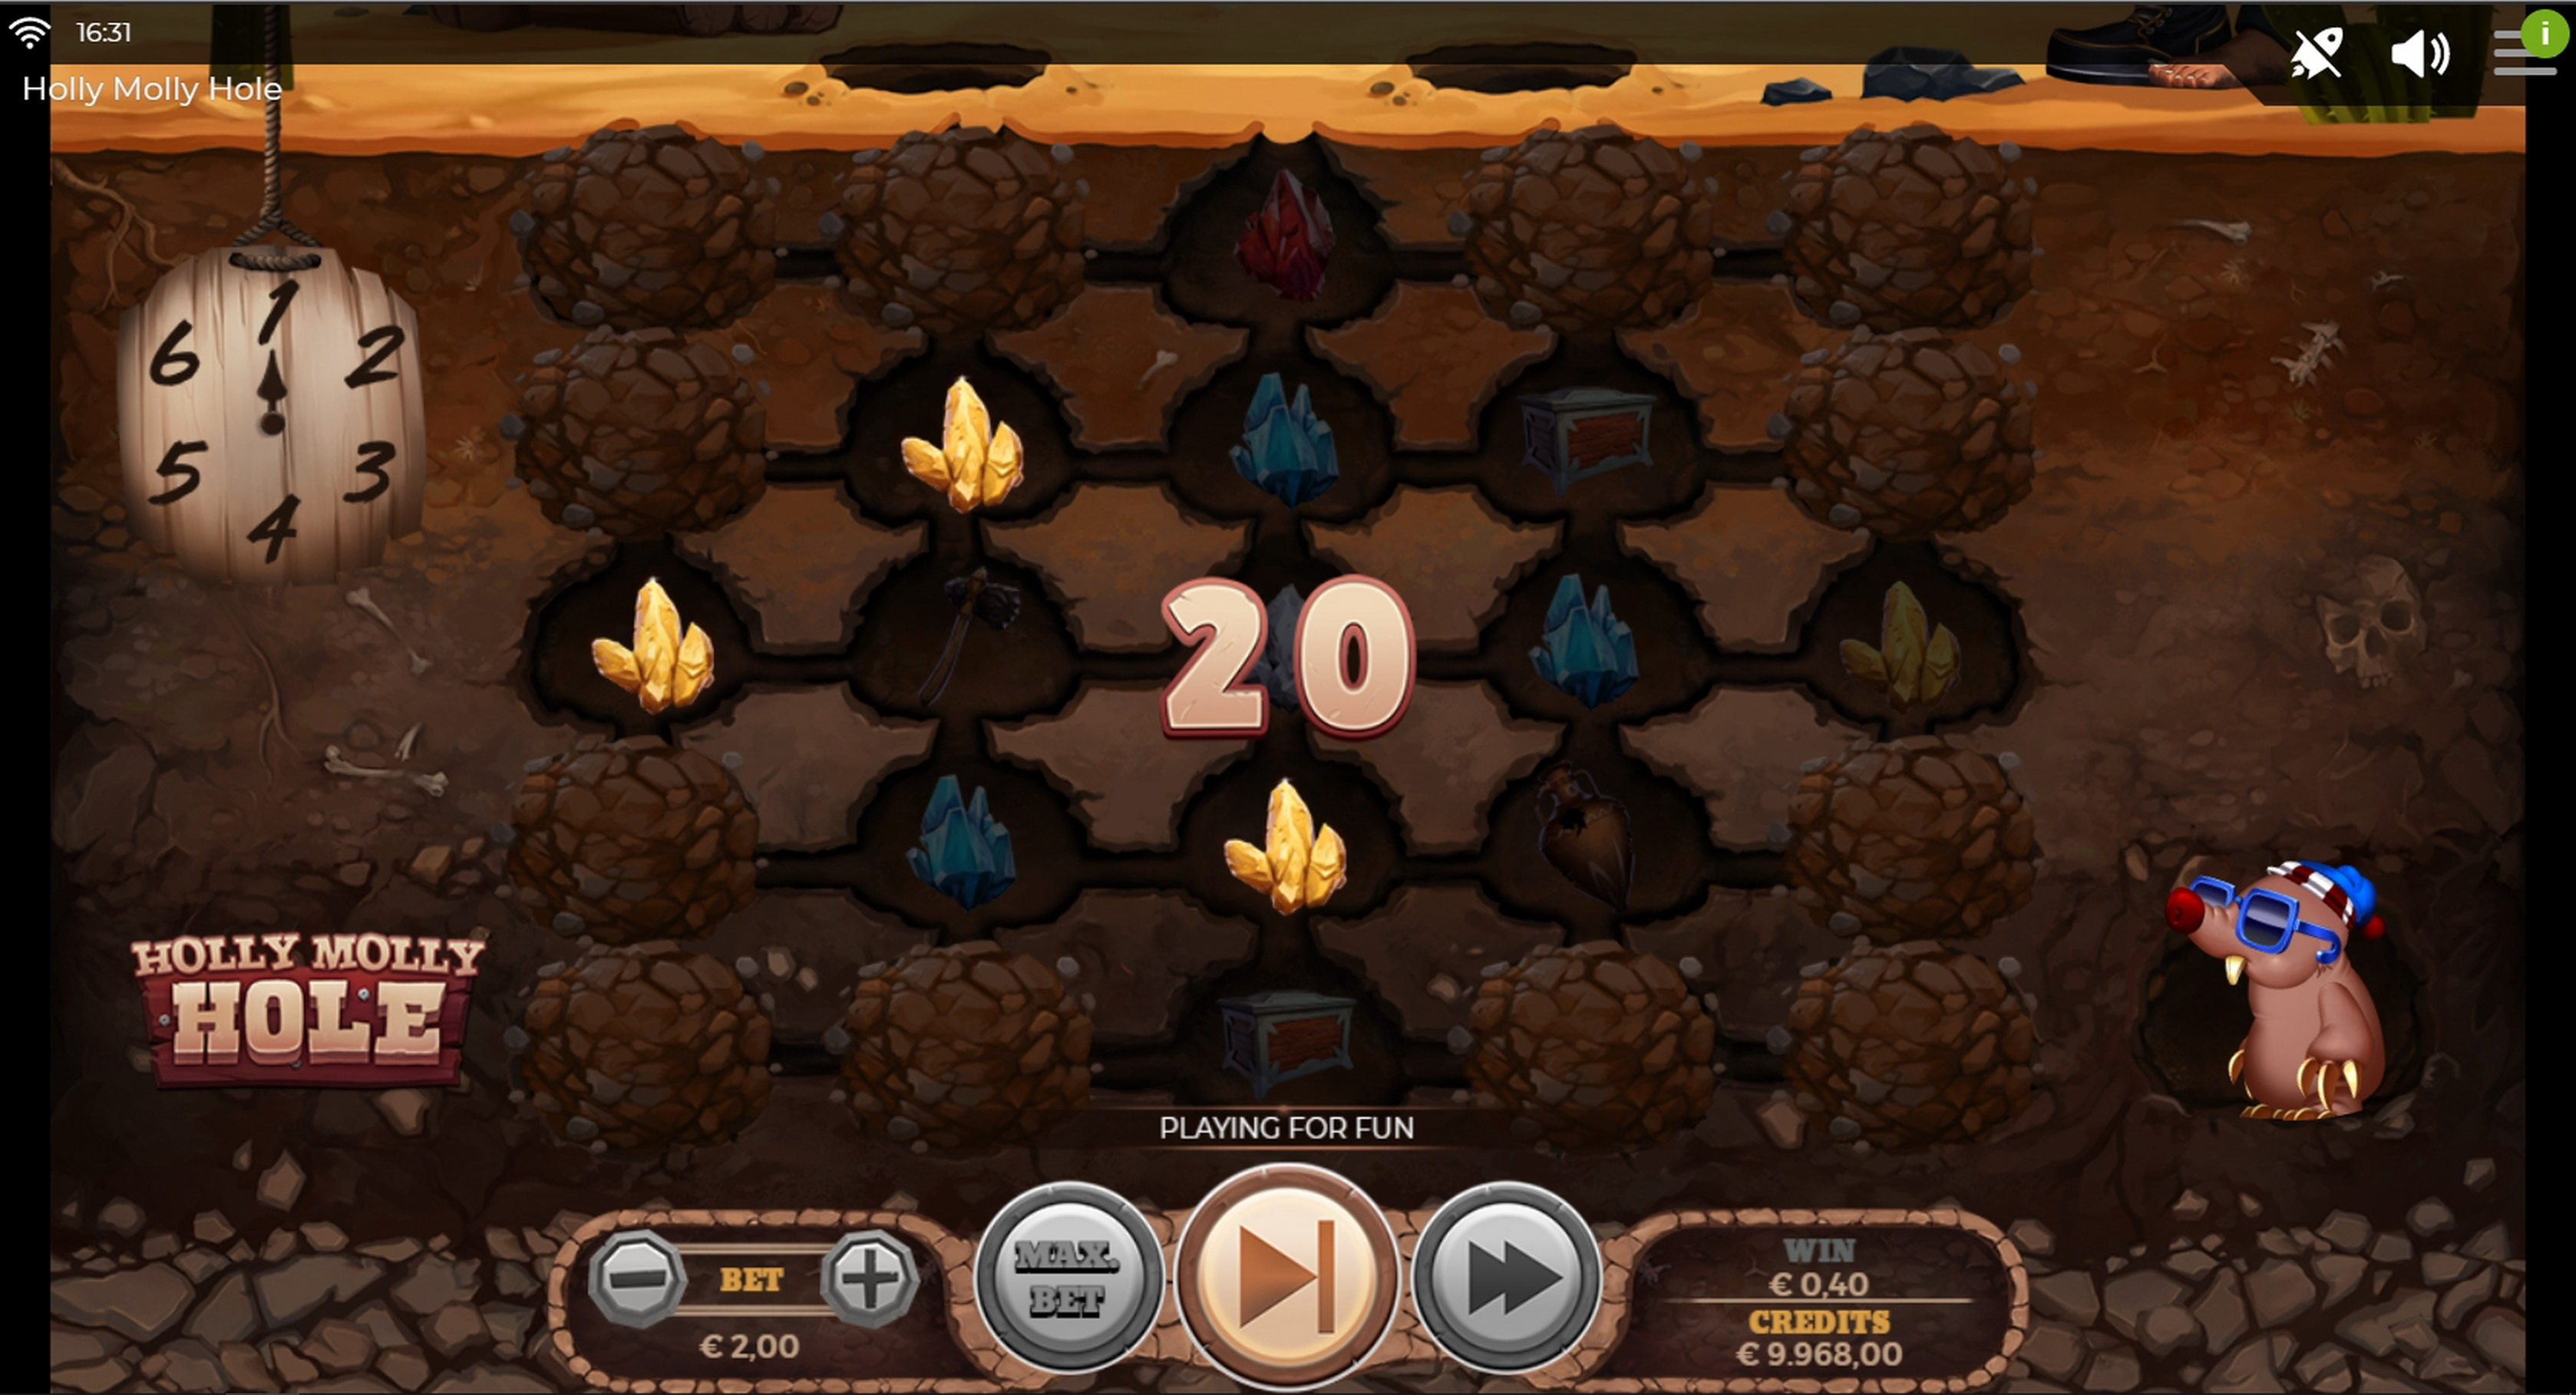 Win Money in Holly Molly Hole Free Slot Game by Spinmatic